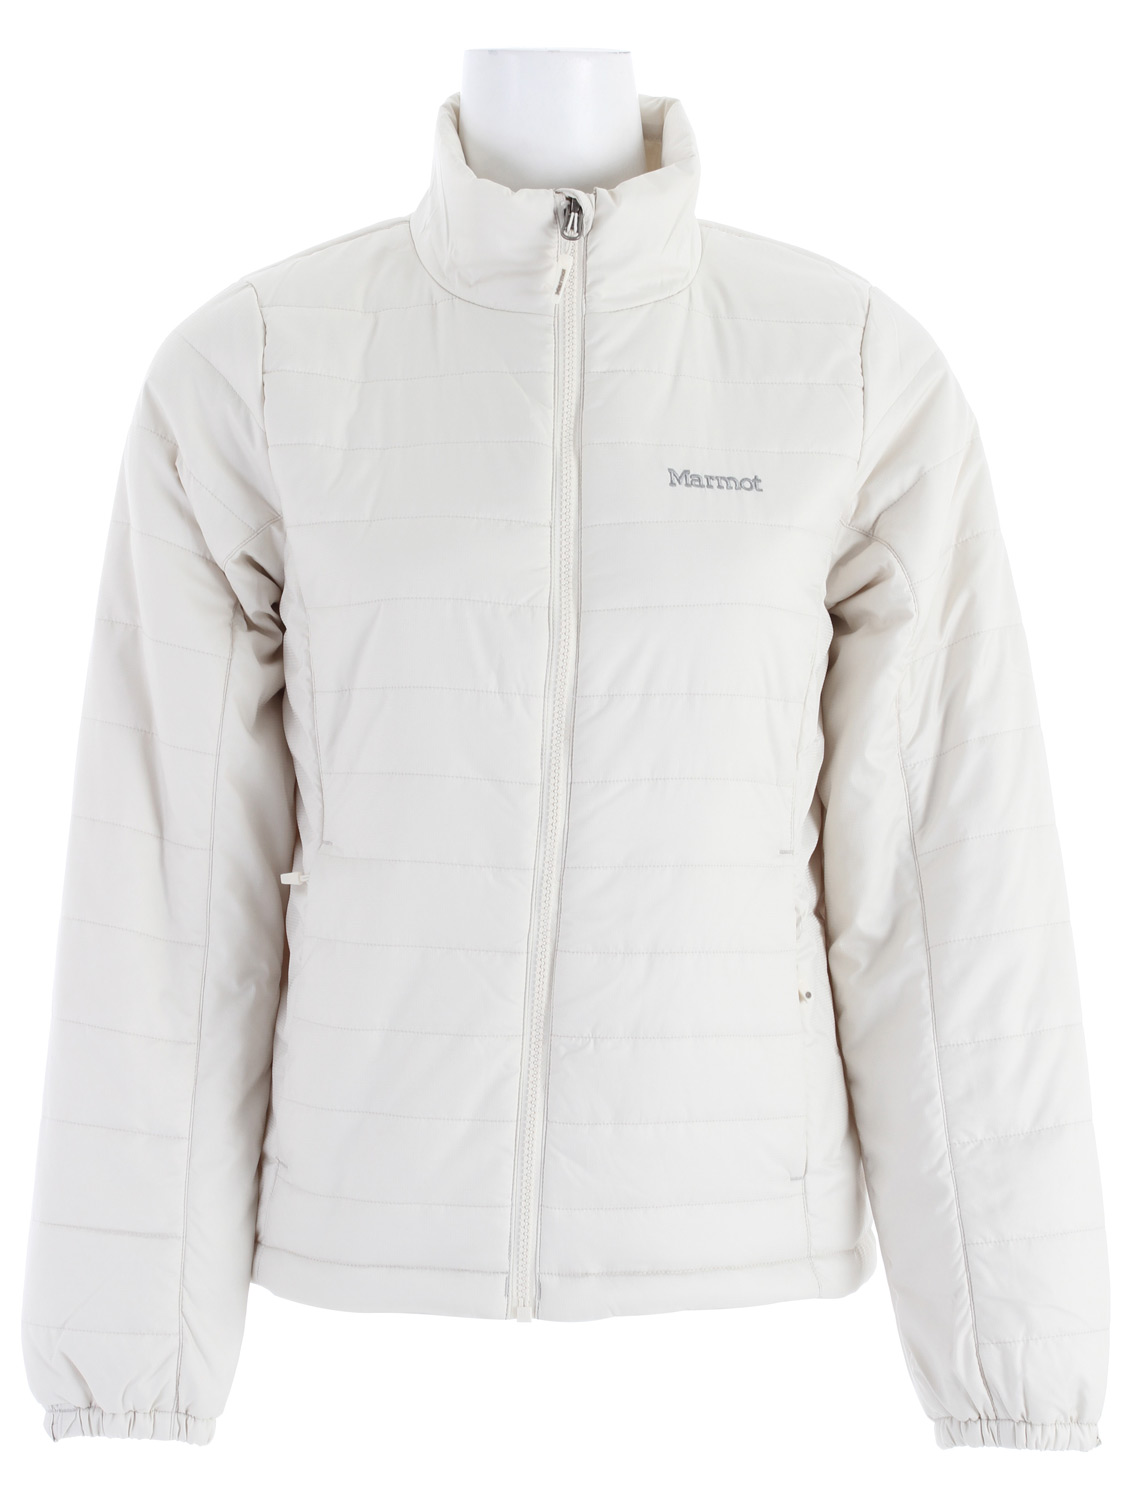 "Key Features of the Marmot Brilliant Insulated Jacket: Weight: 14.8oz (420g) Materials: 100% Polyester Ripstop DWR 2.3 oz/ yd Lining: 100% Polyester Embossed WR 1.3 oz/ yd Thermal R Eco Insulation Zippered Hand Pockets Inside Zip Pocket Elastic Draw Cord Hem Angel-Wing Movement Zippin Compatible 24"" Center Back Length for Size Medium - $96.95"